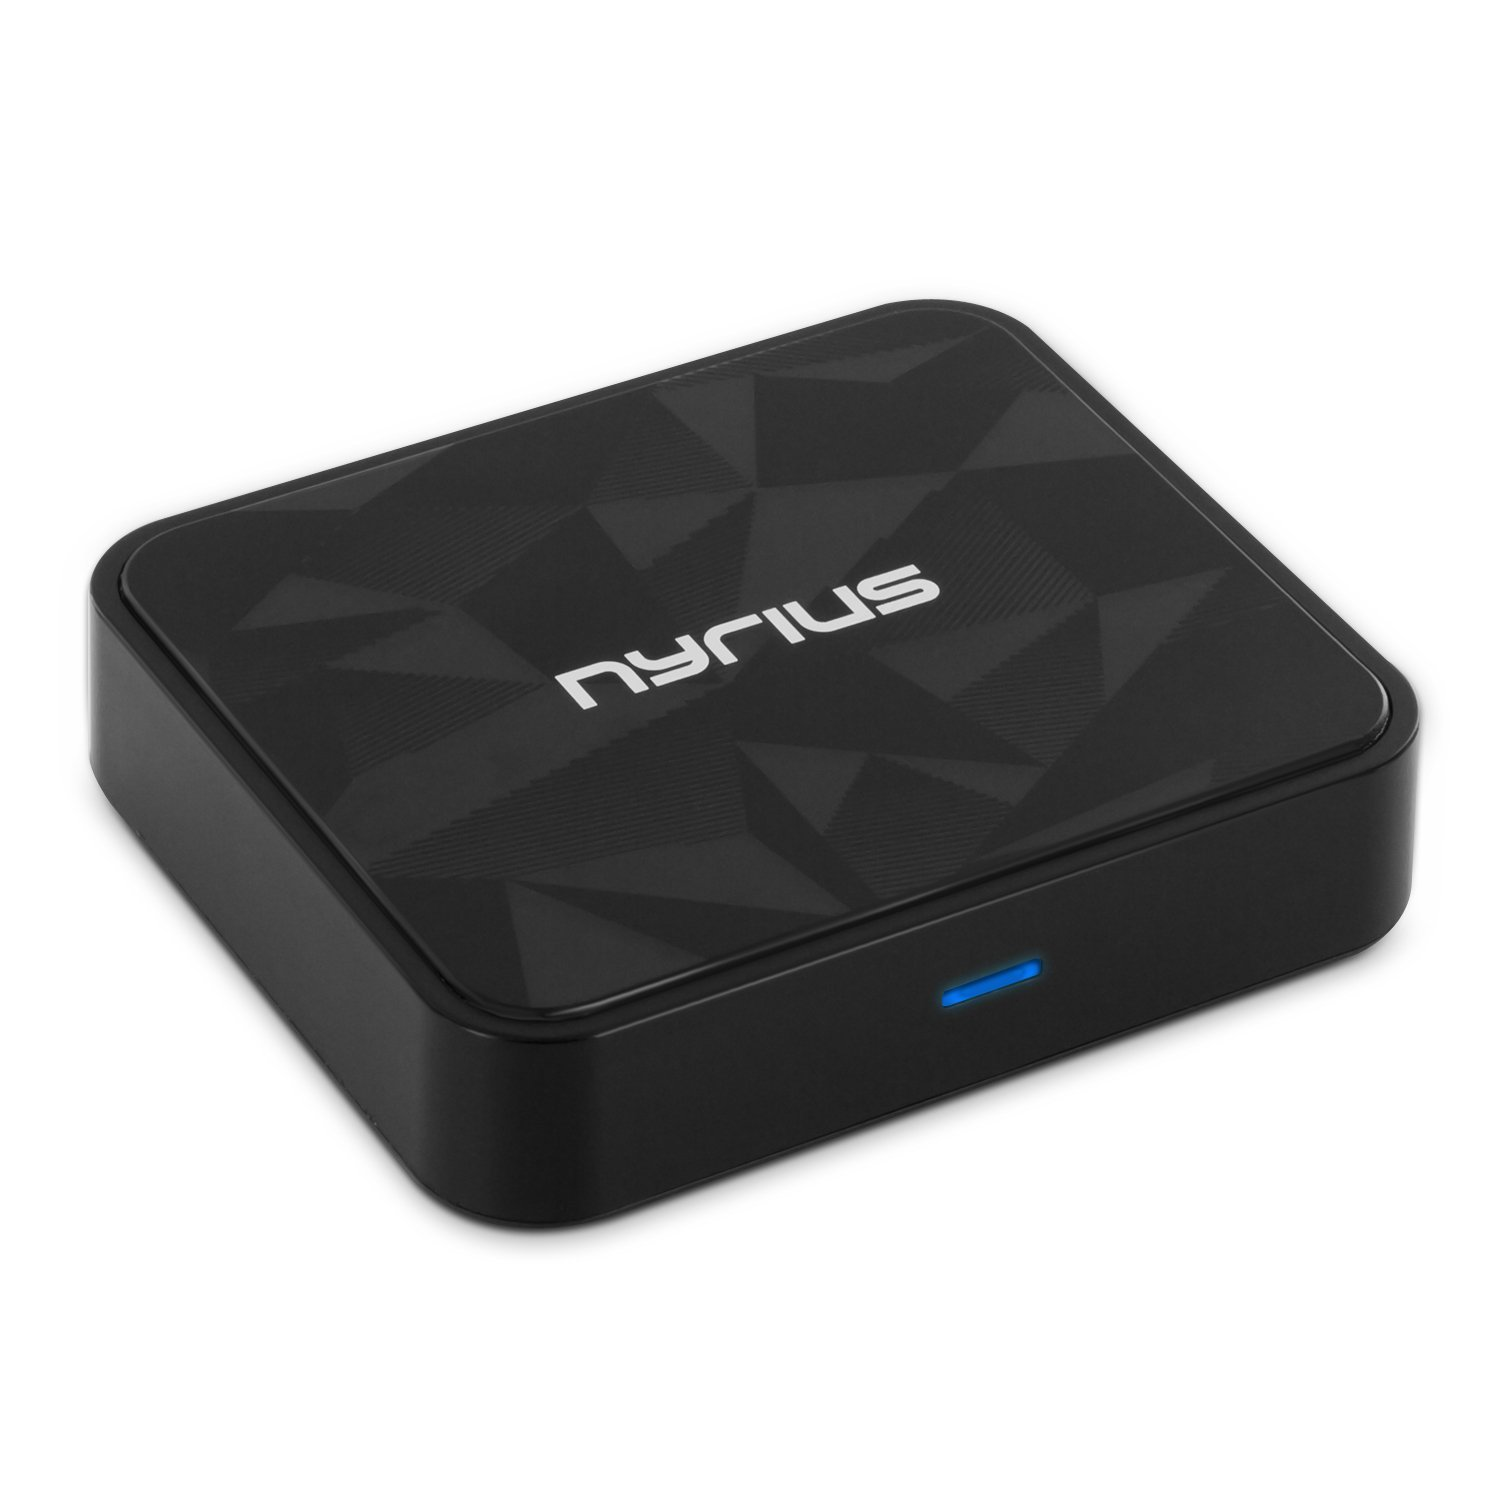 Nyrius Songo HiFi Wireless Bluetooth aptX Music Receiver for Streaming iPhone, iPad, iPod, Samsung, Android, Blackberry, Smartphones, Tablets, Laptops to Stereo Systems with Digital Optical or 3.5mm Audio Connections (BR50) лезвие сегментированное olfa 18х100х0 5мм 8 сегментов 50шт ol lb 50b